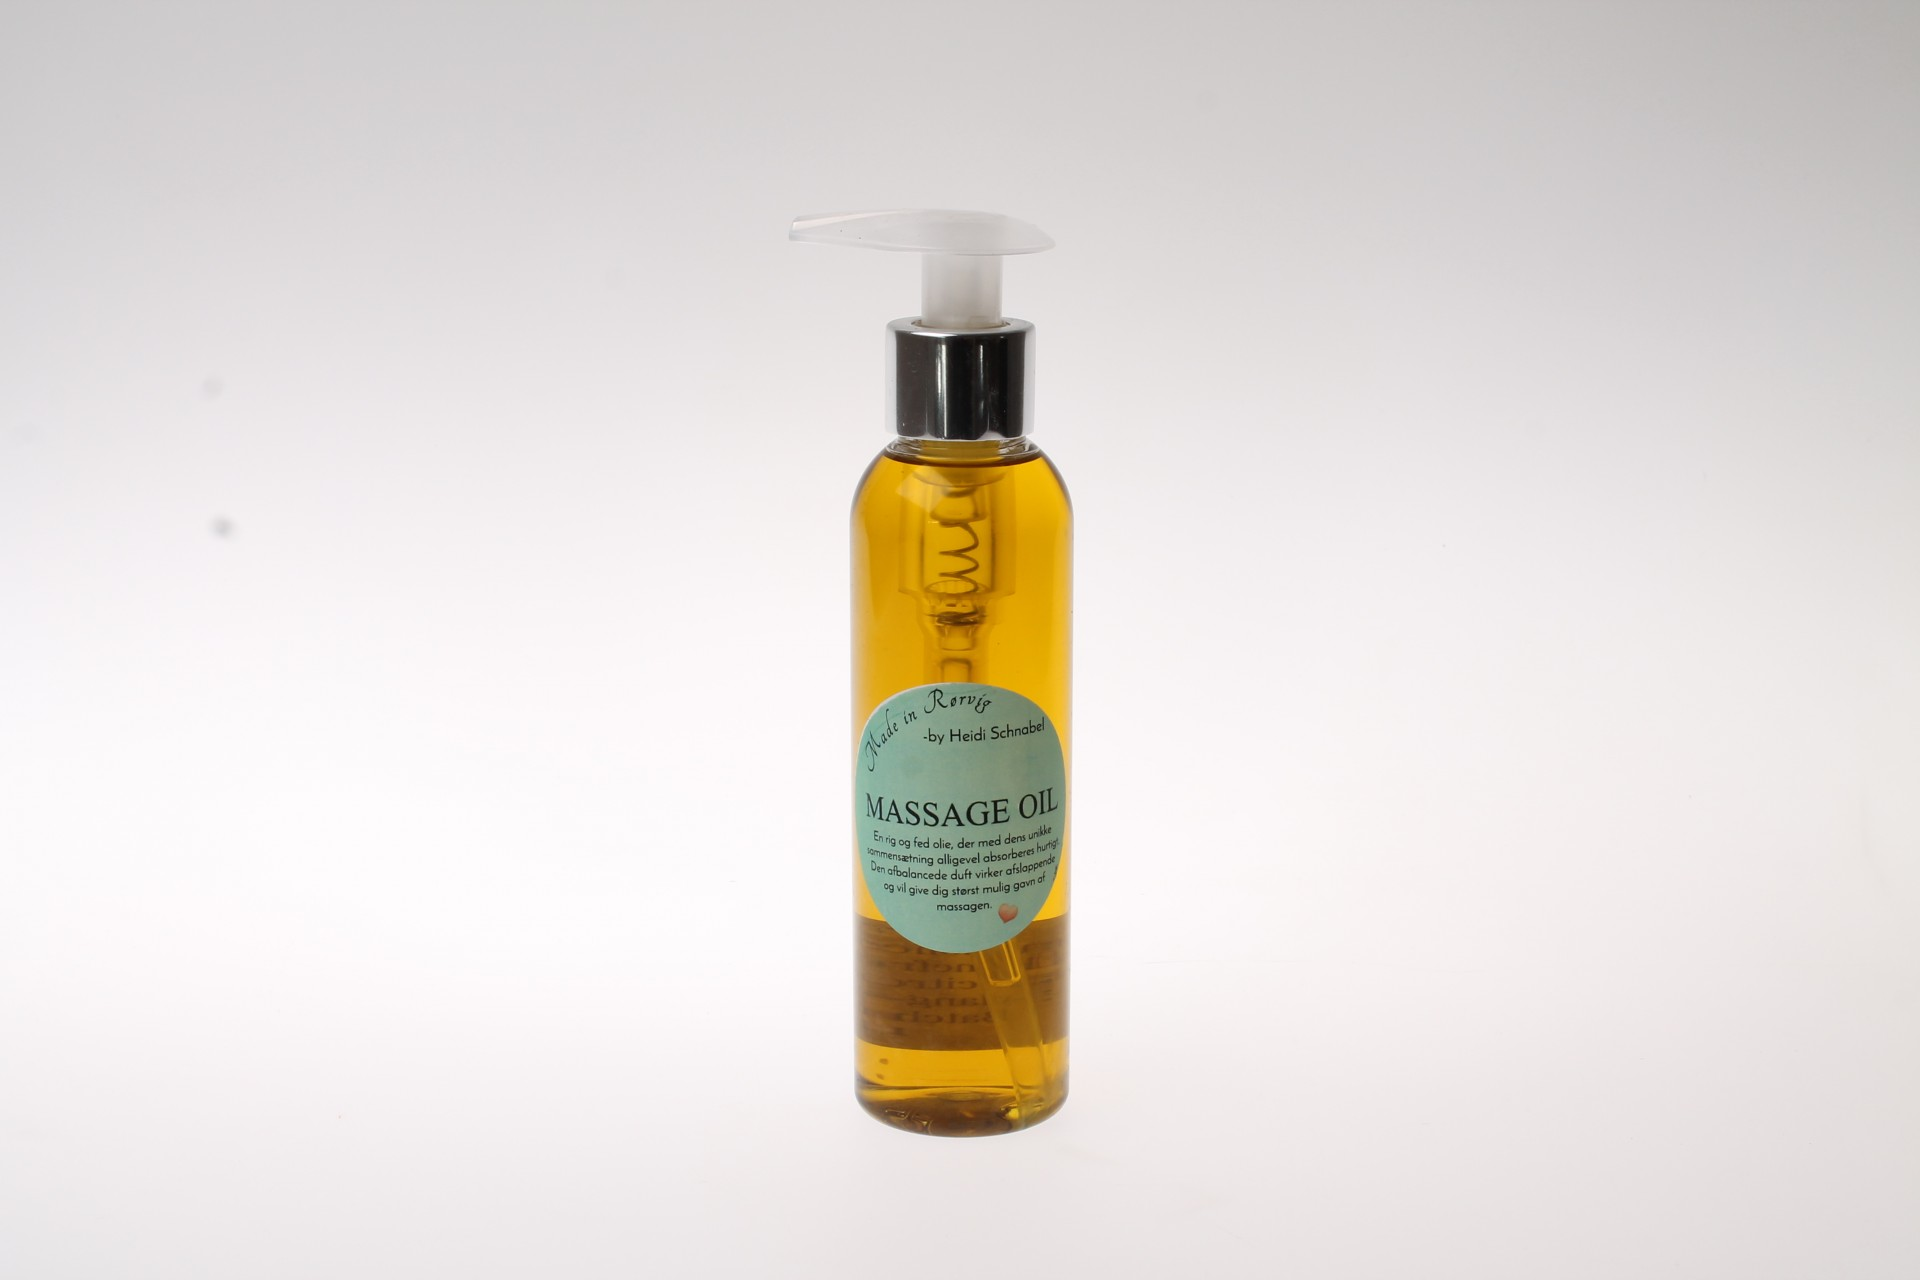 Massage Oil / Heidi Schnabel